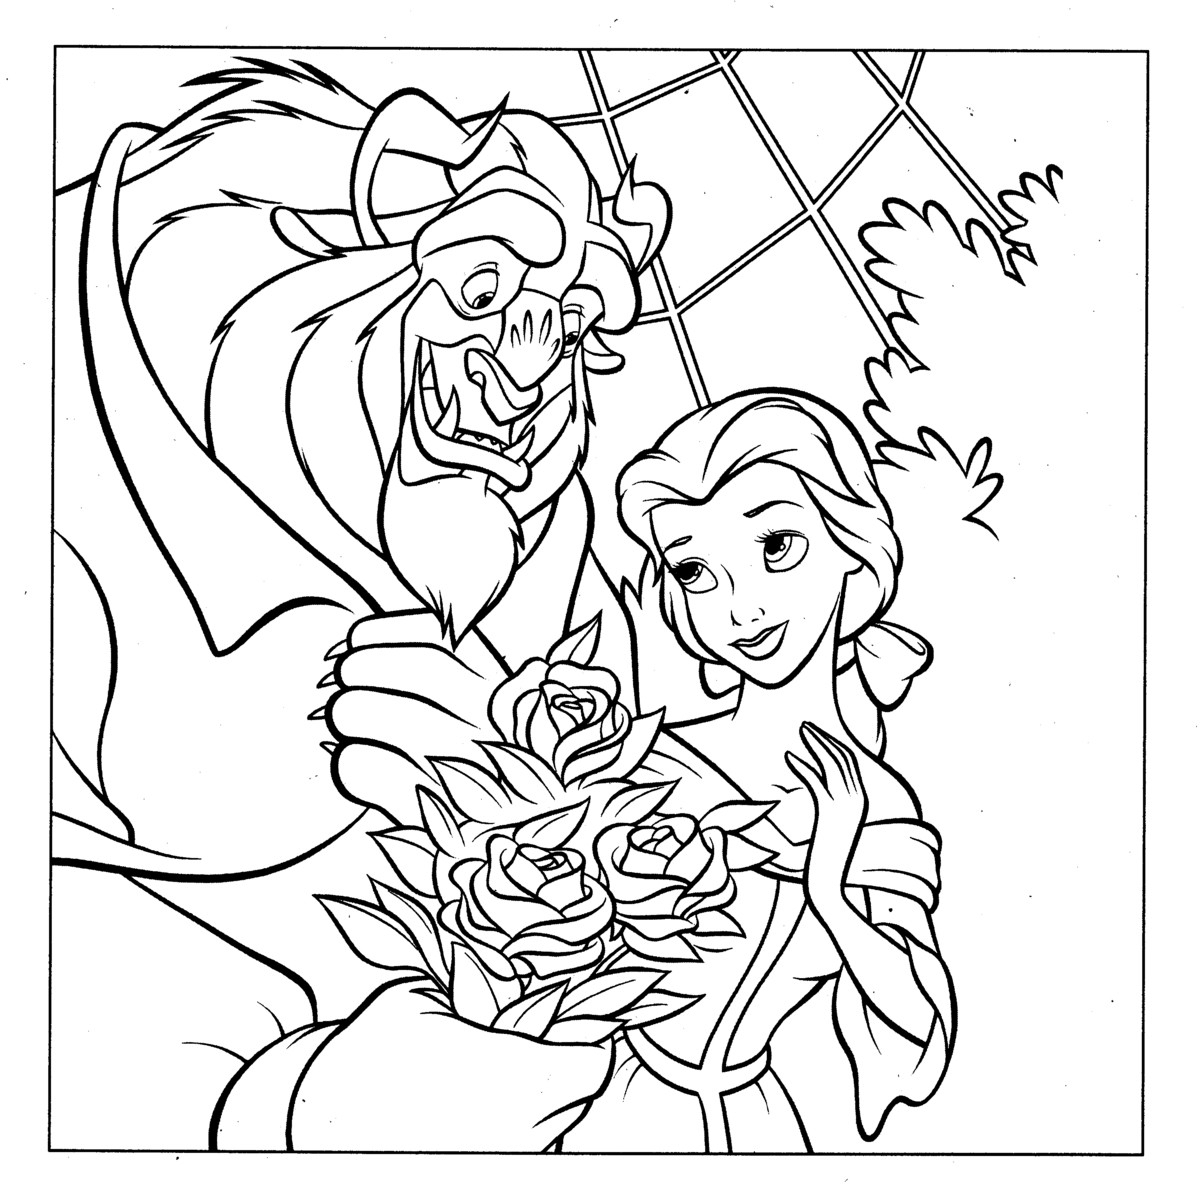 wedding day disney wedding coloring pages disney coloring pages wedding coloring pages disney wedding pages day disney coloring wedding